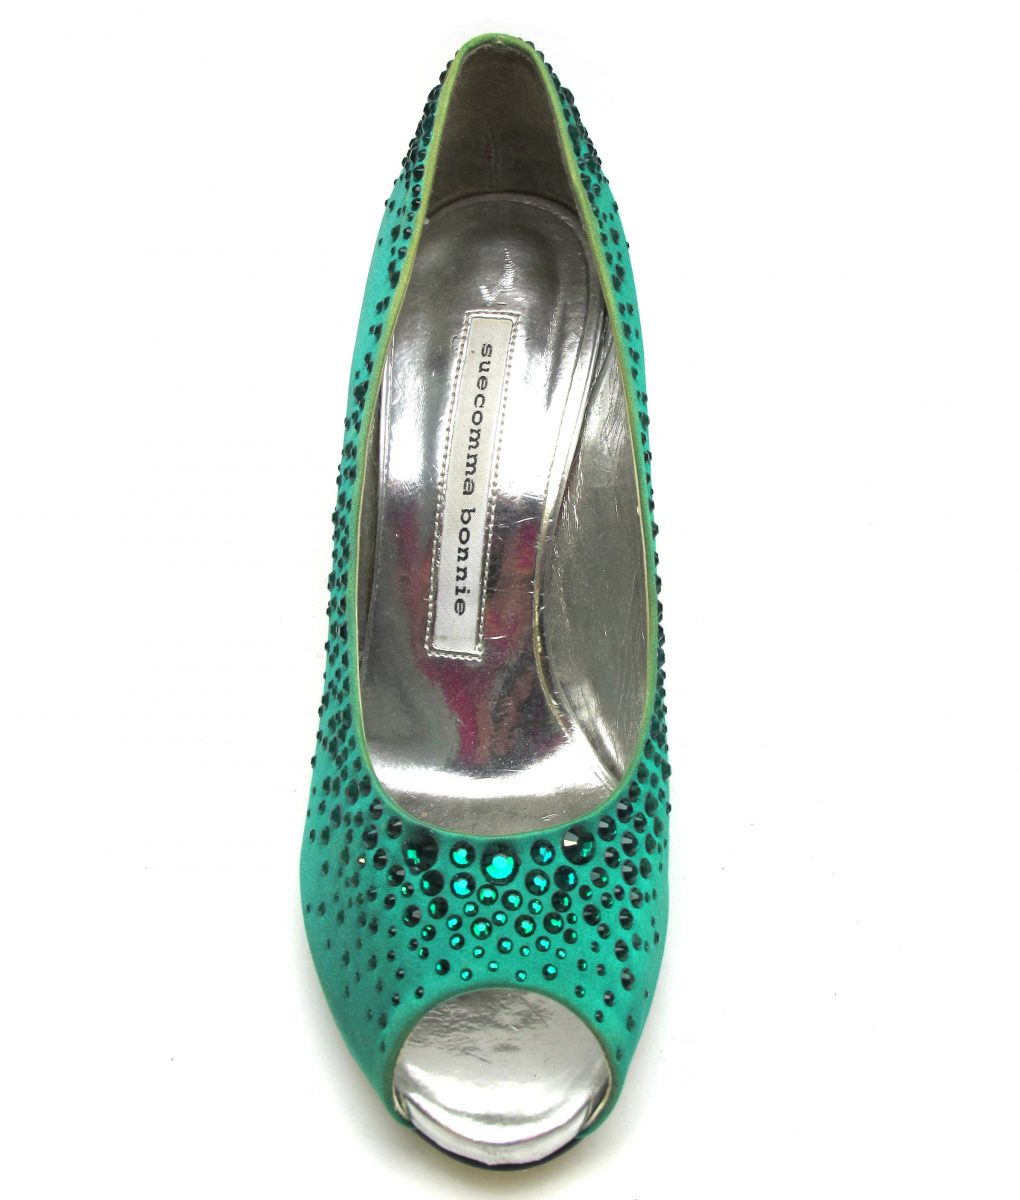 Suecomma Bonnie Emerald green heels with Swarovski crystals